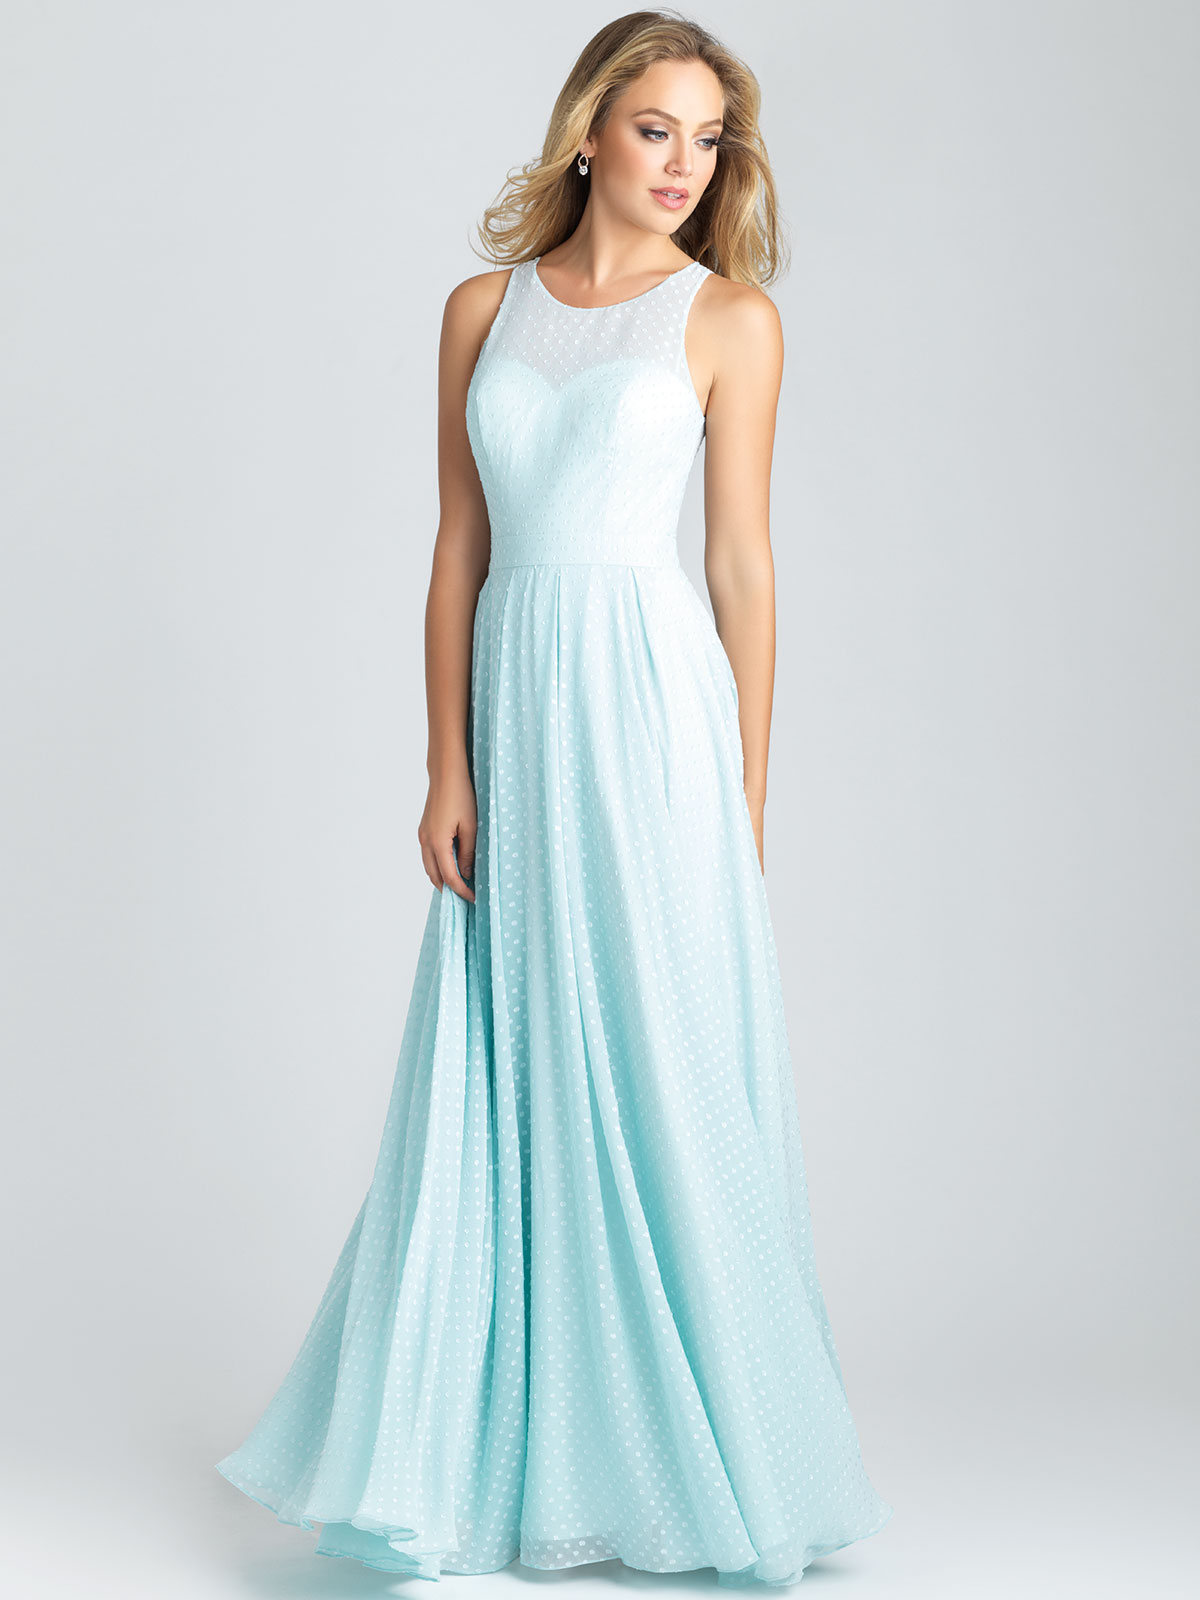 Allure 1542 Dotted Chiffon A-line Bridesmaid Dress|DimitraDesigns.com